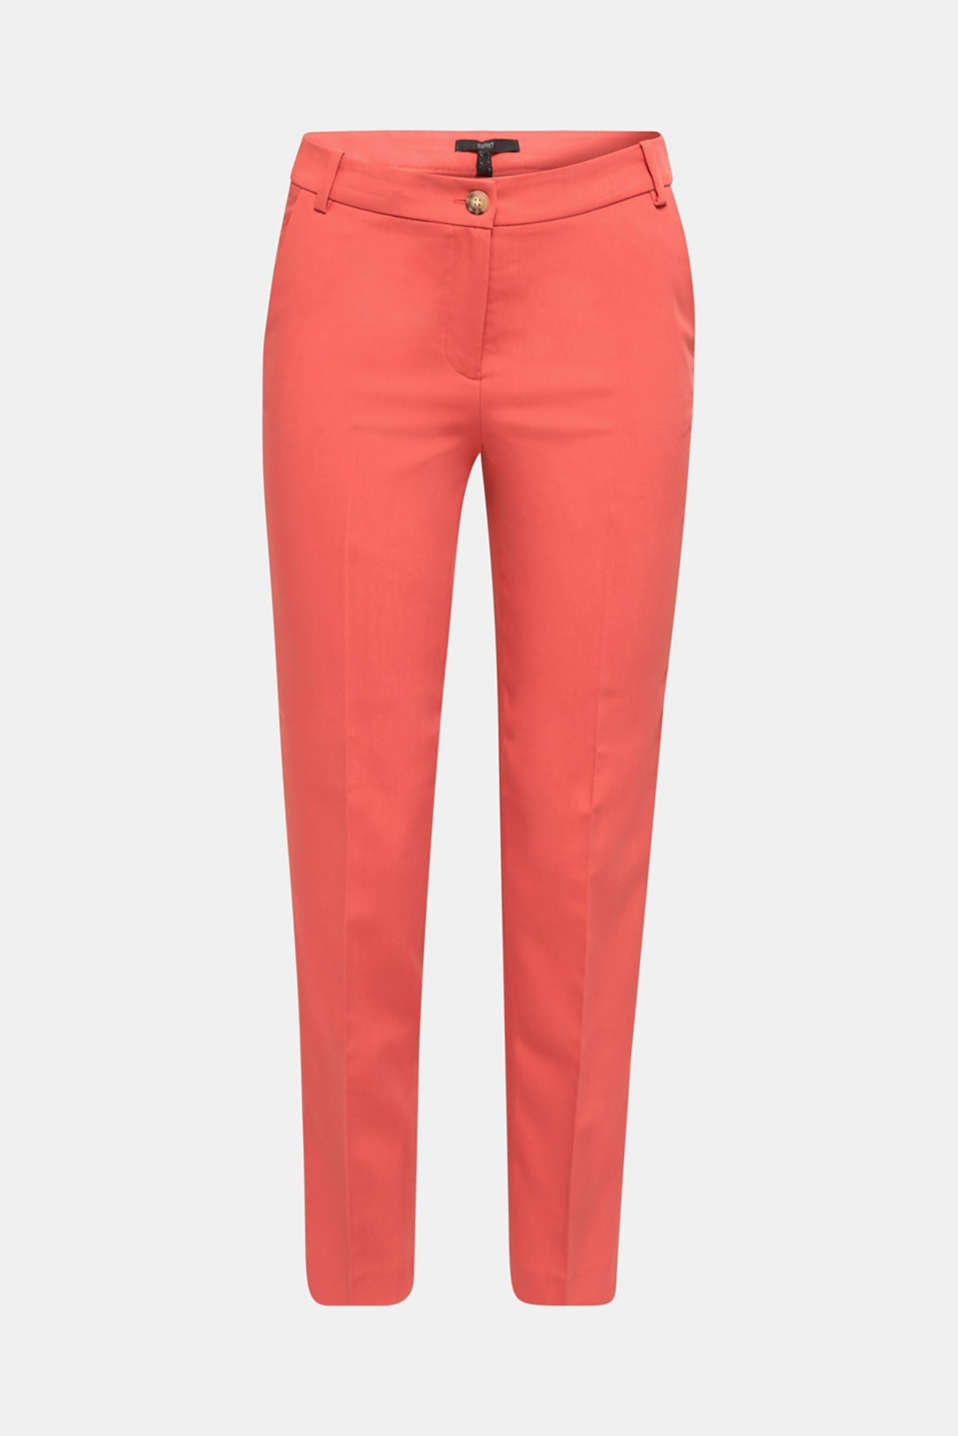 SPRING TWILL Mix + Match stretch trousers, TERRACOTTA, detail image number 6